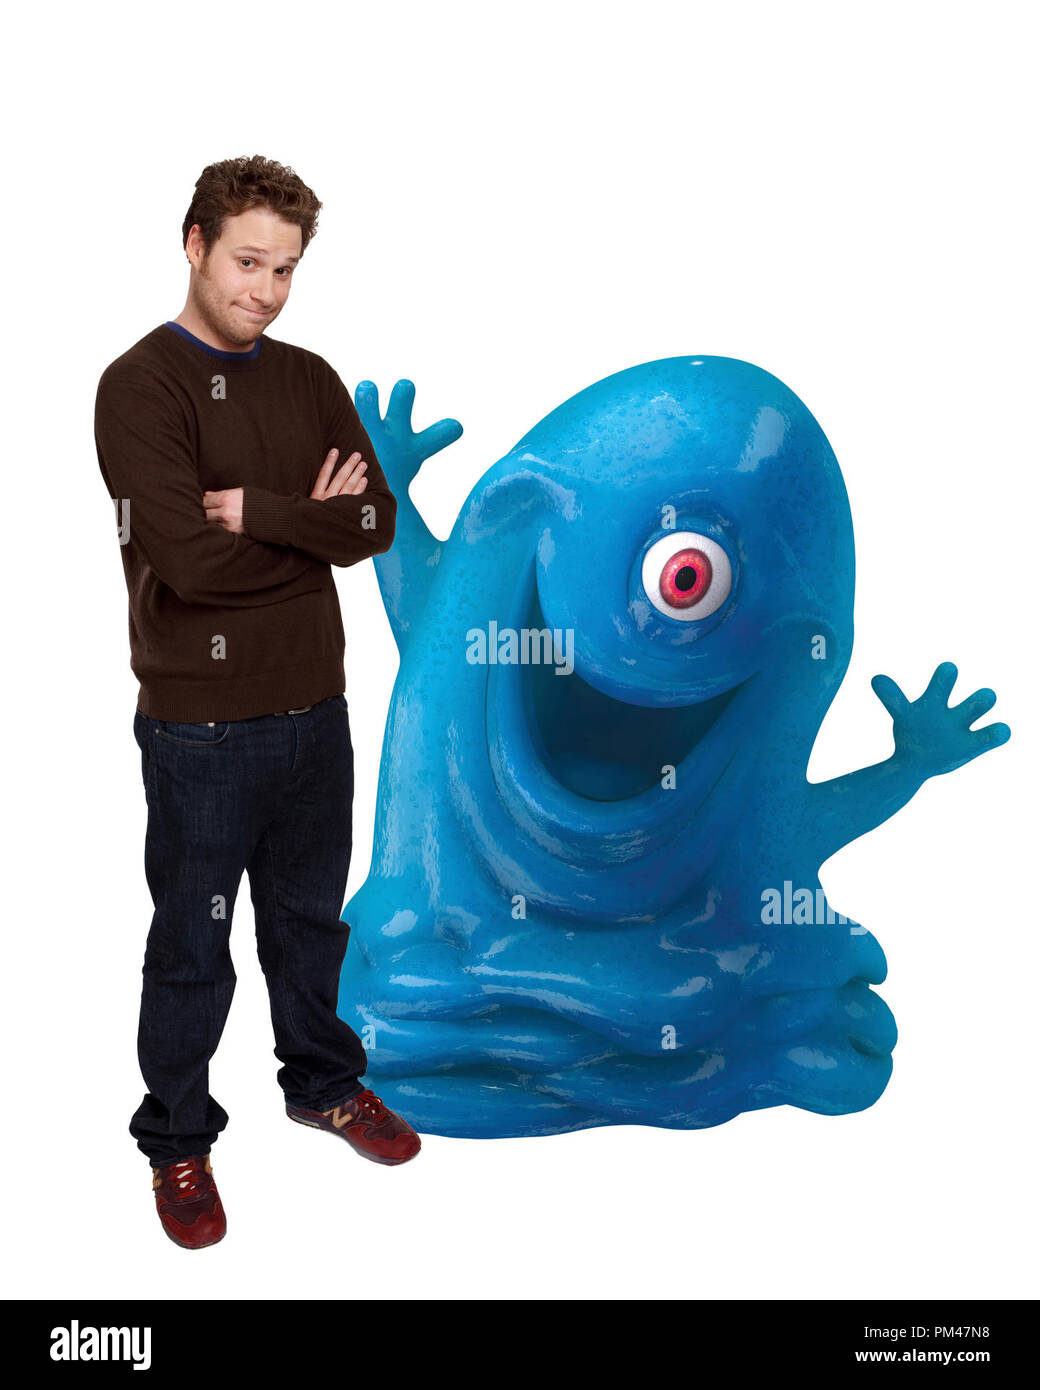 "SETH ROGEN voices B.O.B. in DreamWorks Animation SKG  Presents ""Monsters vs. Aliens,"" a Paramount Pictures release 2009 - Stock Image"